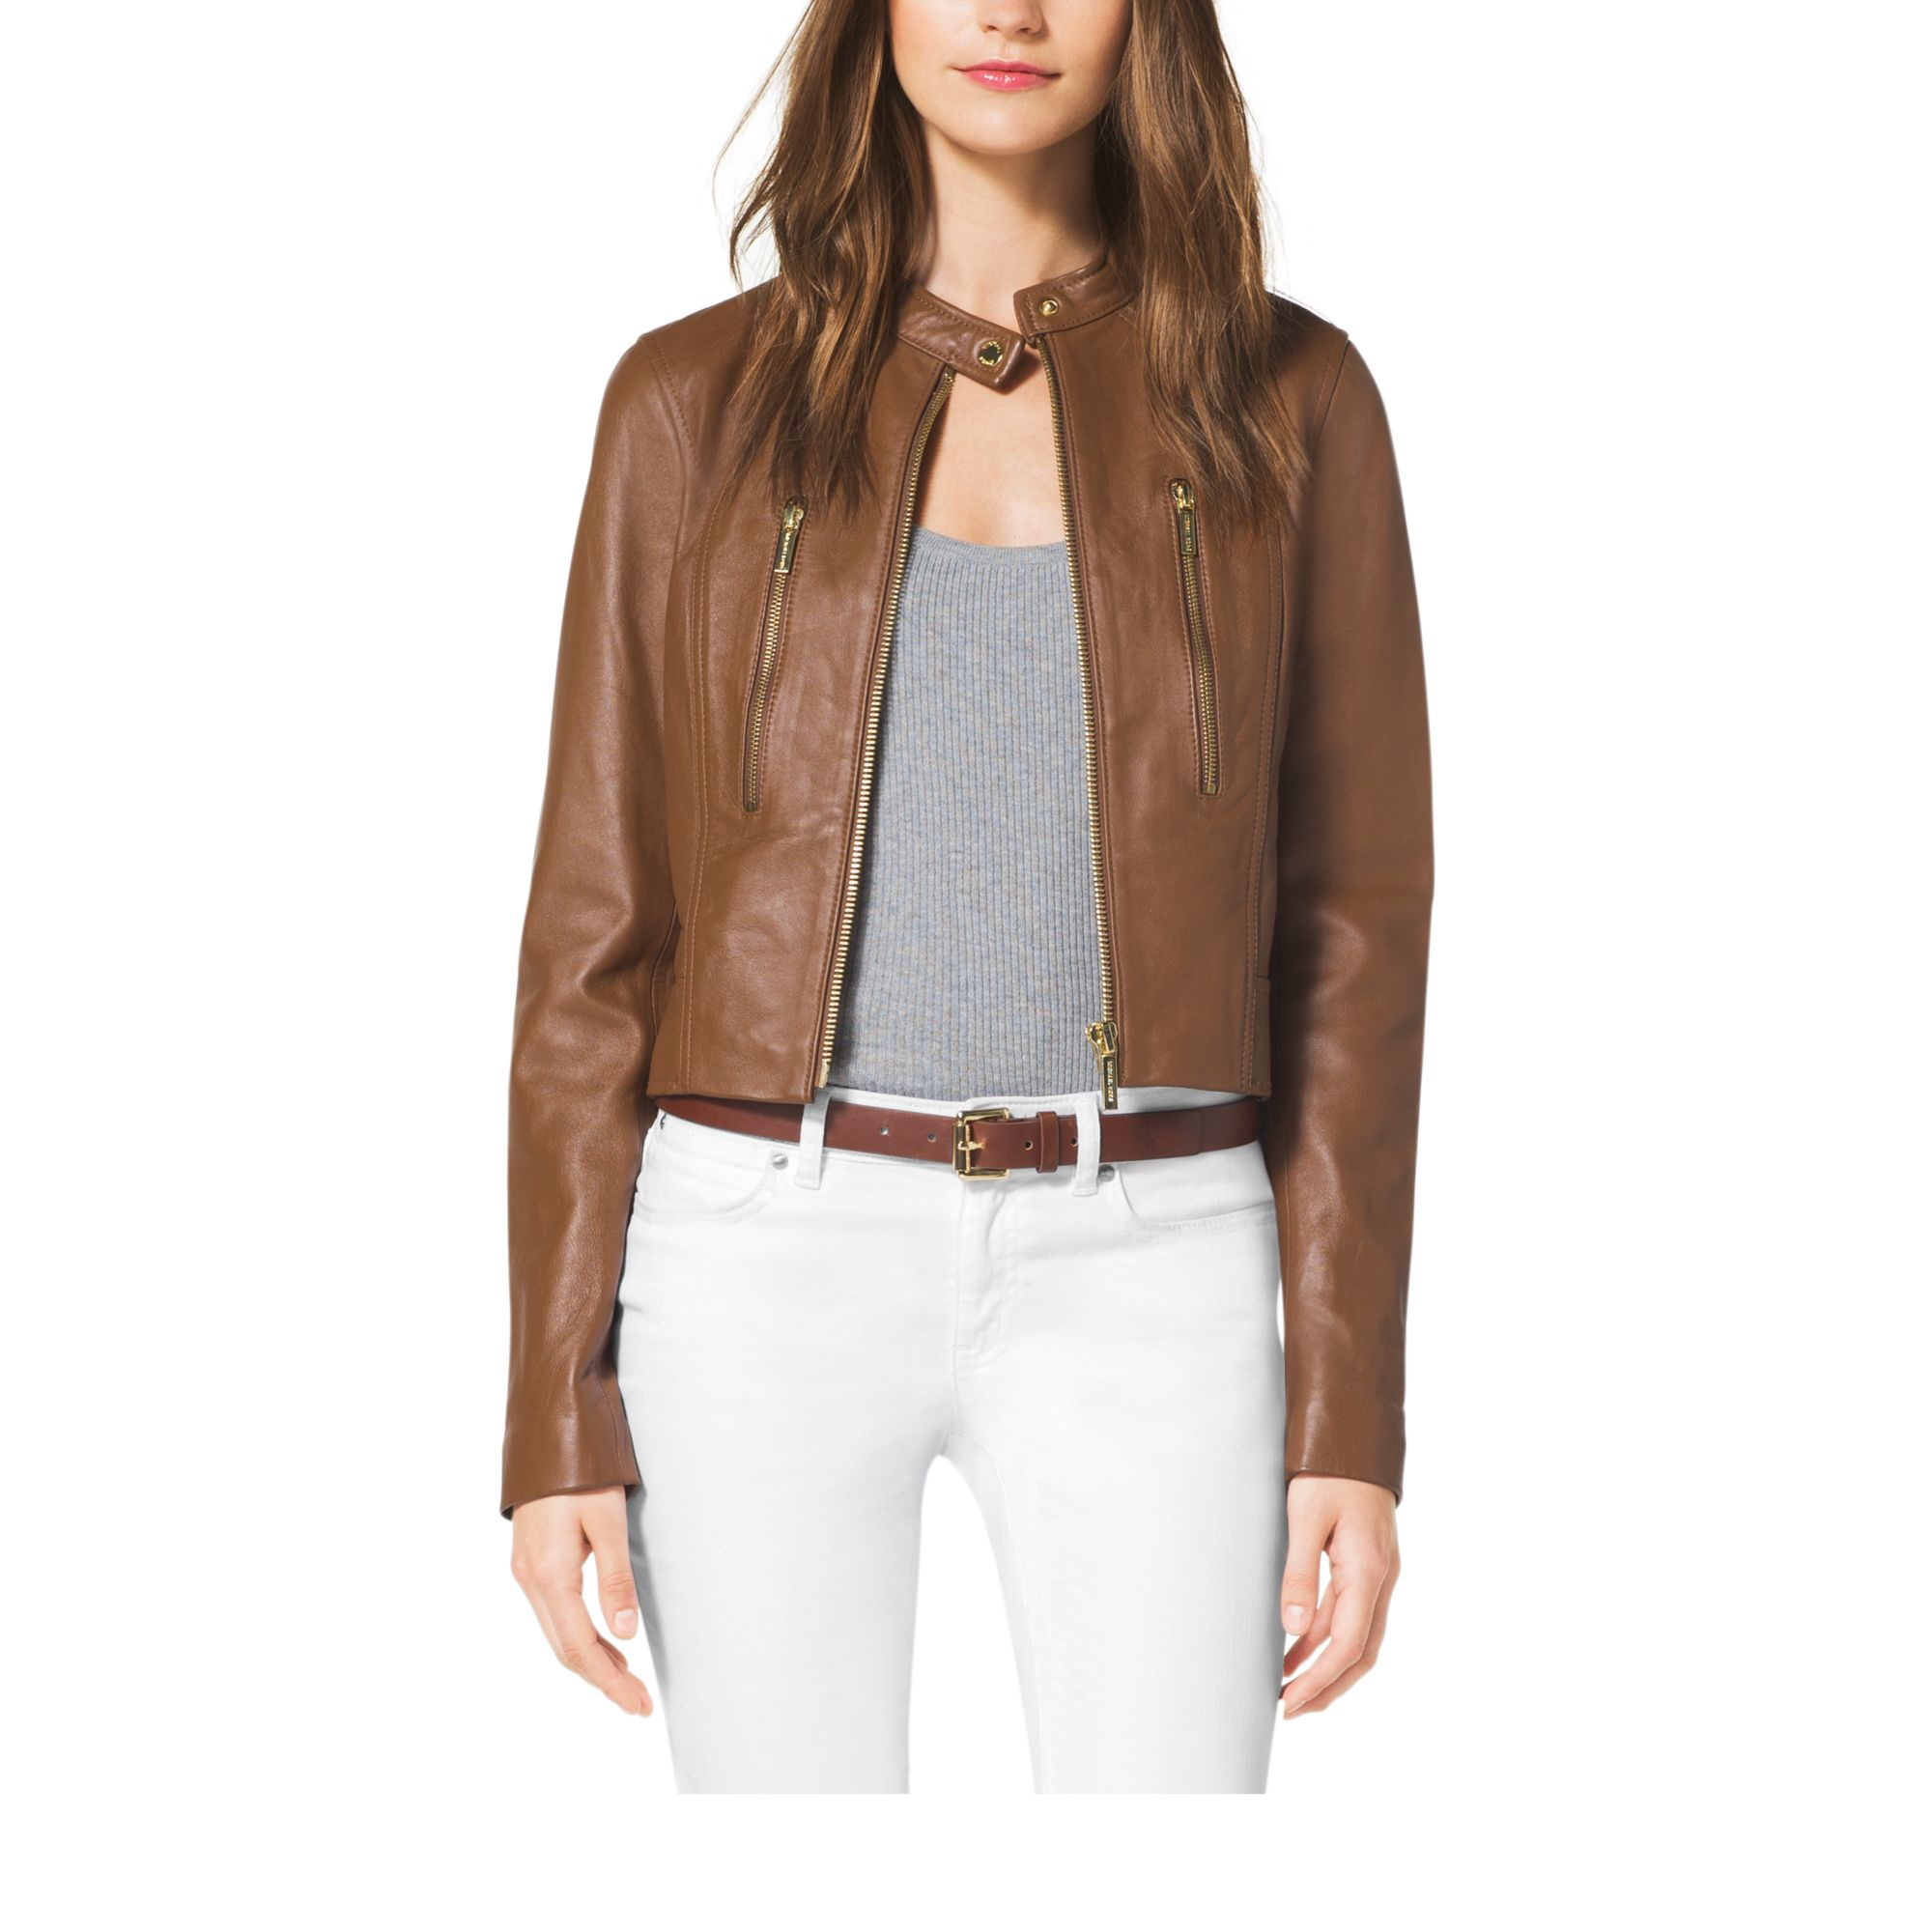 Michael kors Cropped Leather Jacket in Brown | Lyst